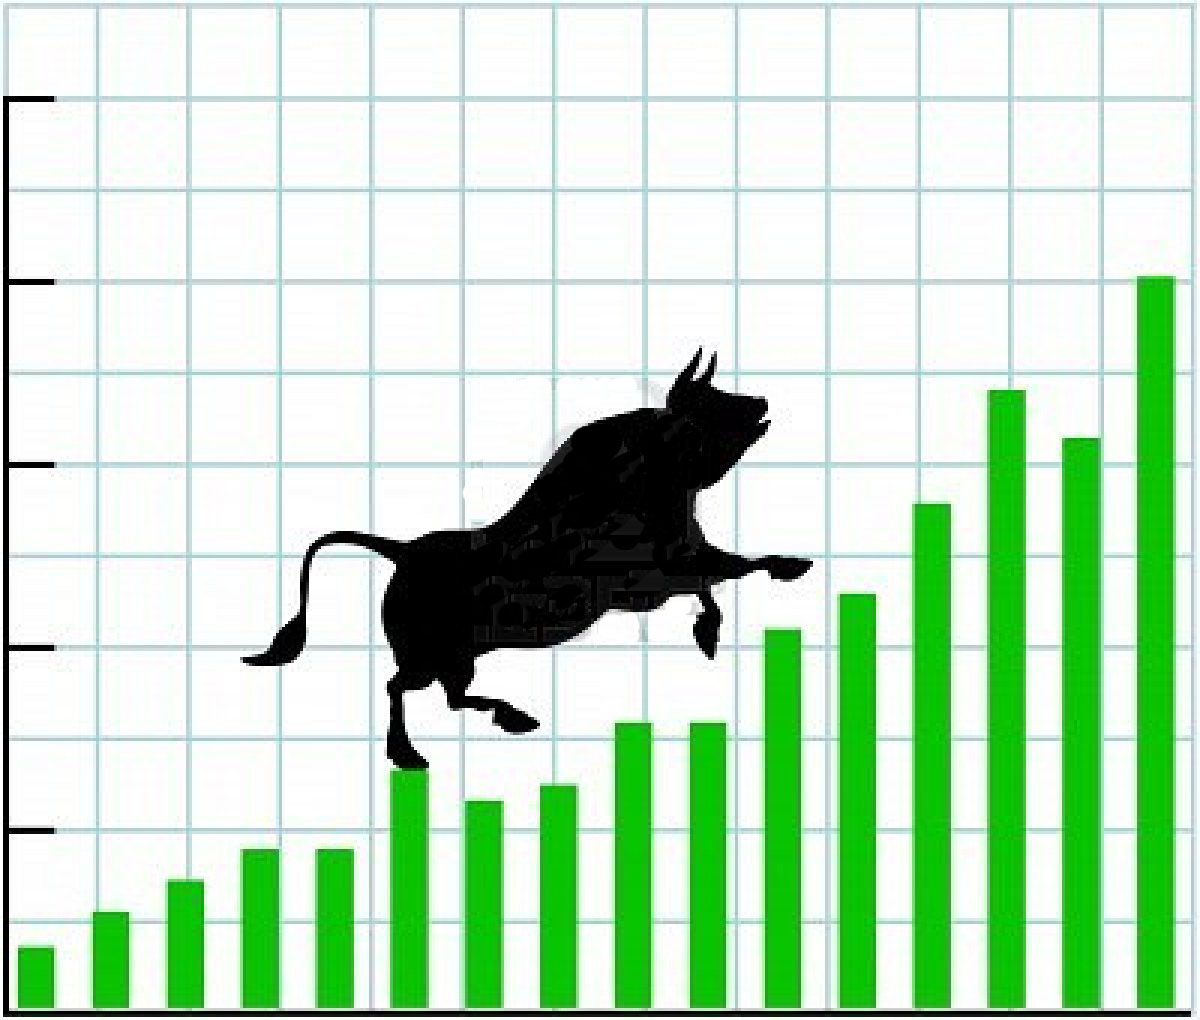 Bulls Are Optimistic Investors Who Are Presently Predicting Good